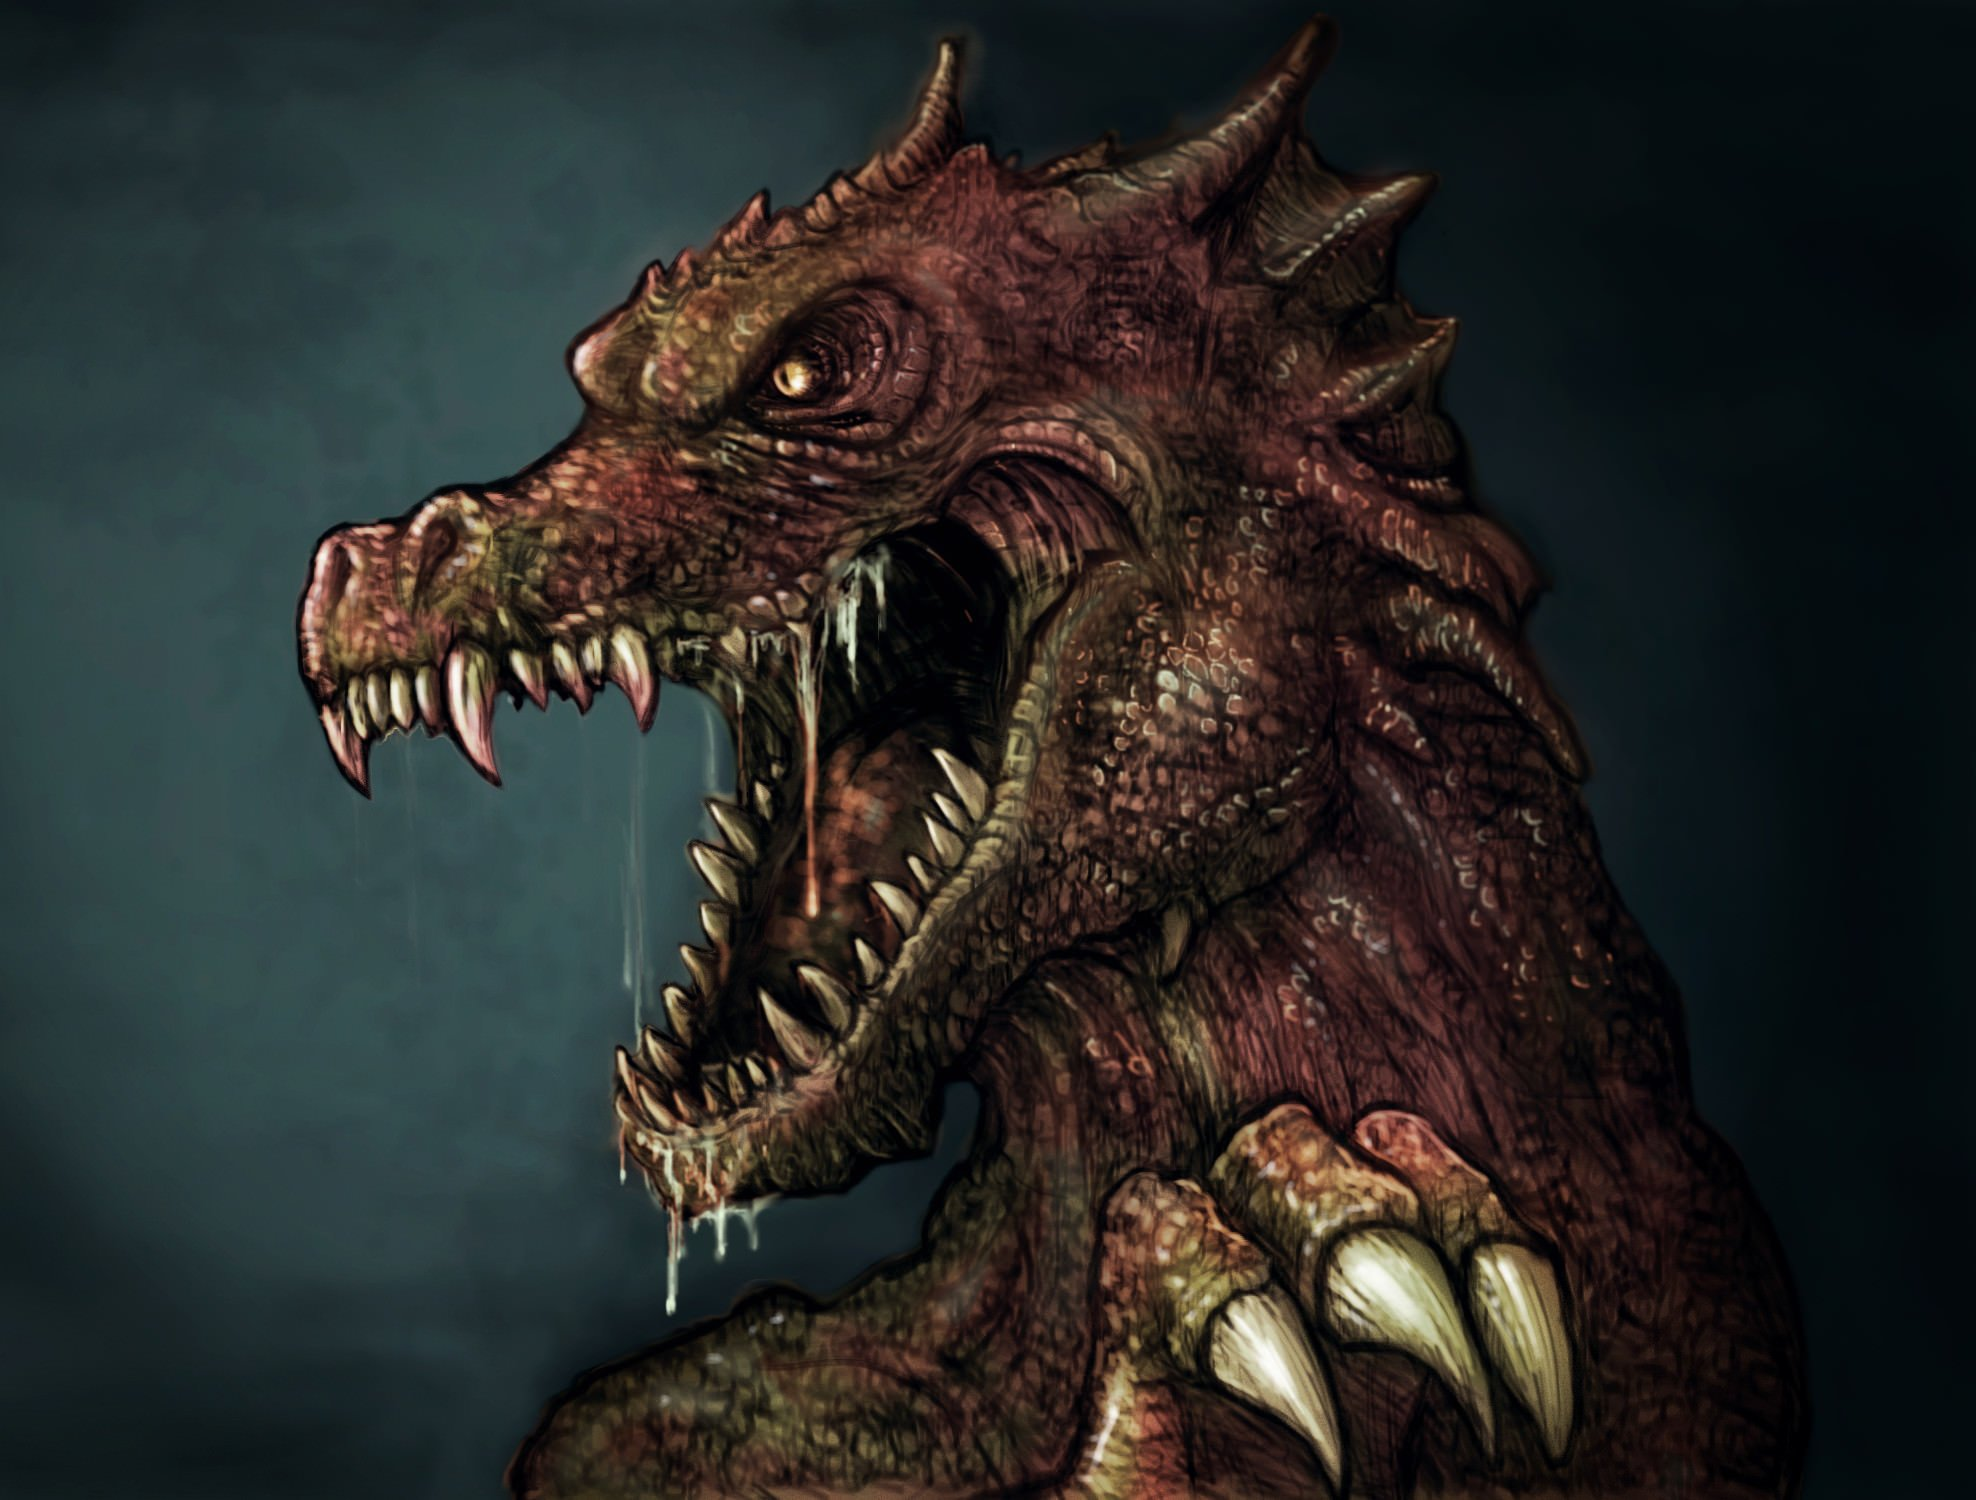 Zombie Dragon Wallpapers - Top Free Zombie Dragon Backgrounds